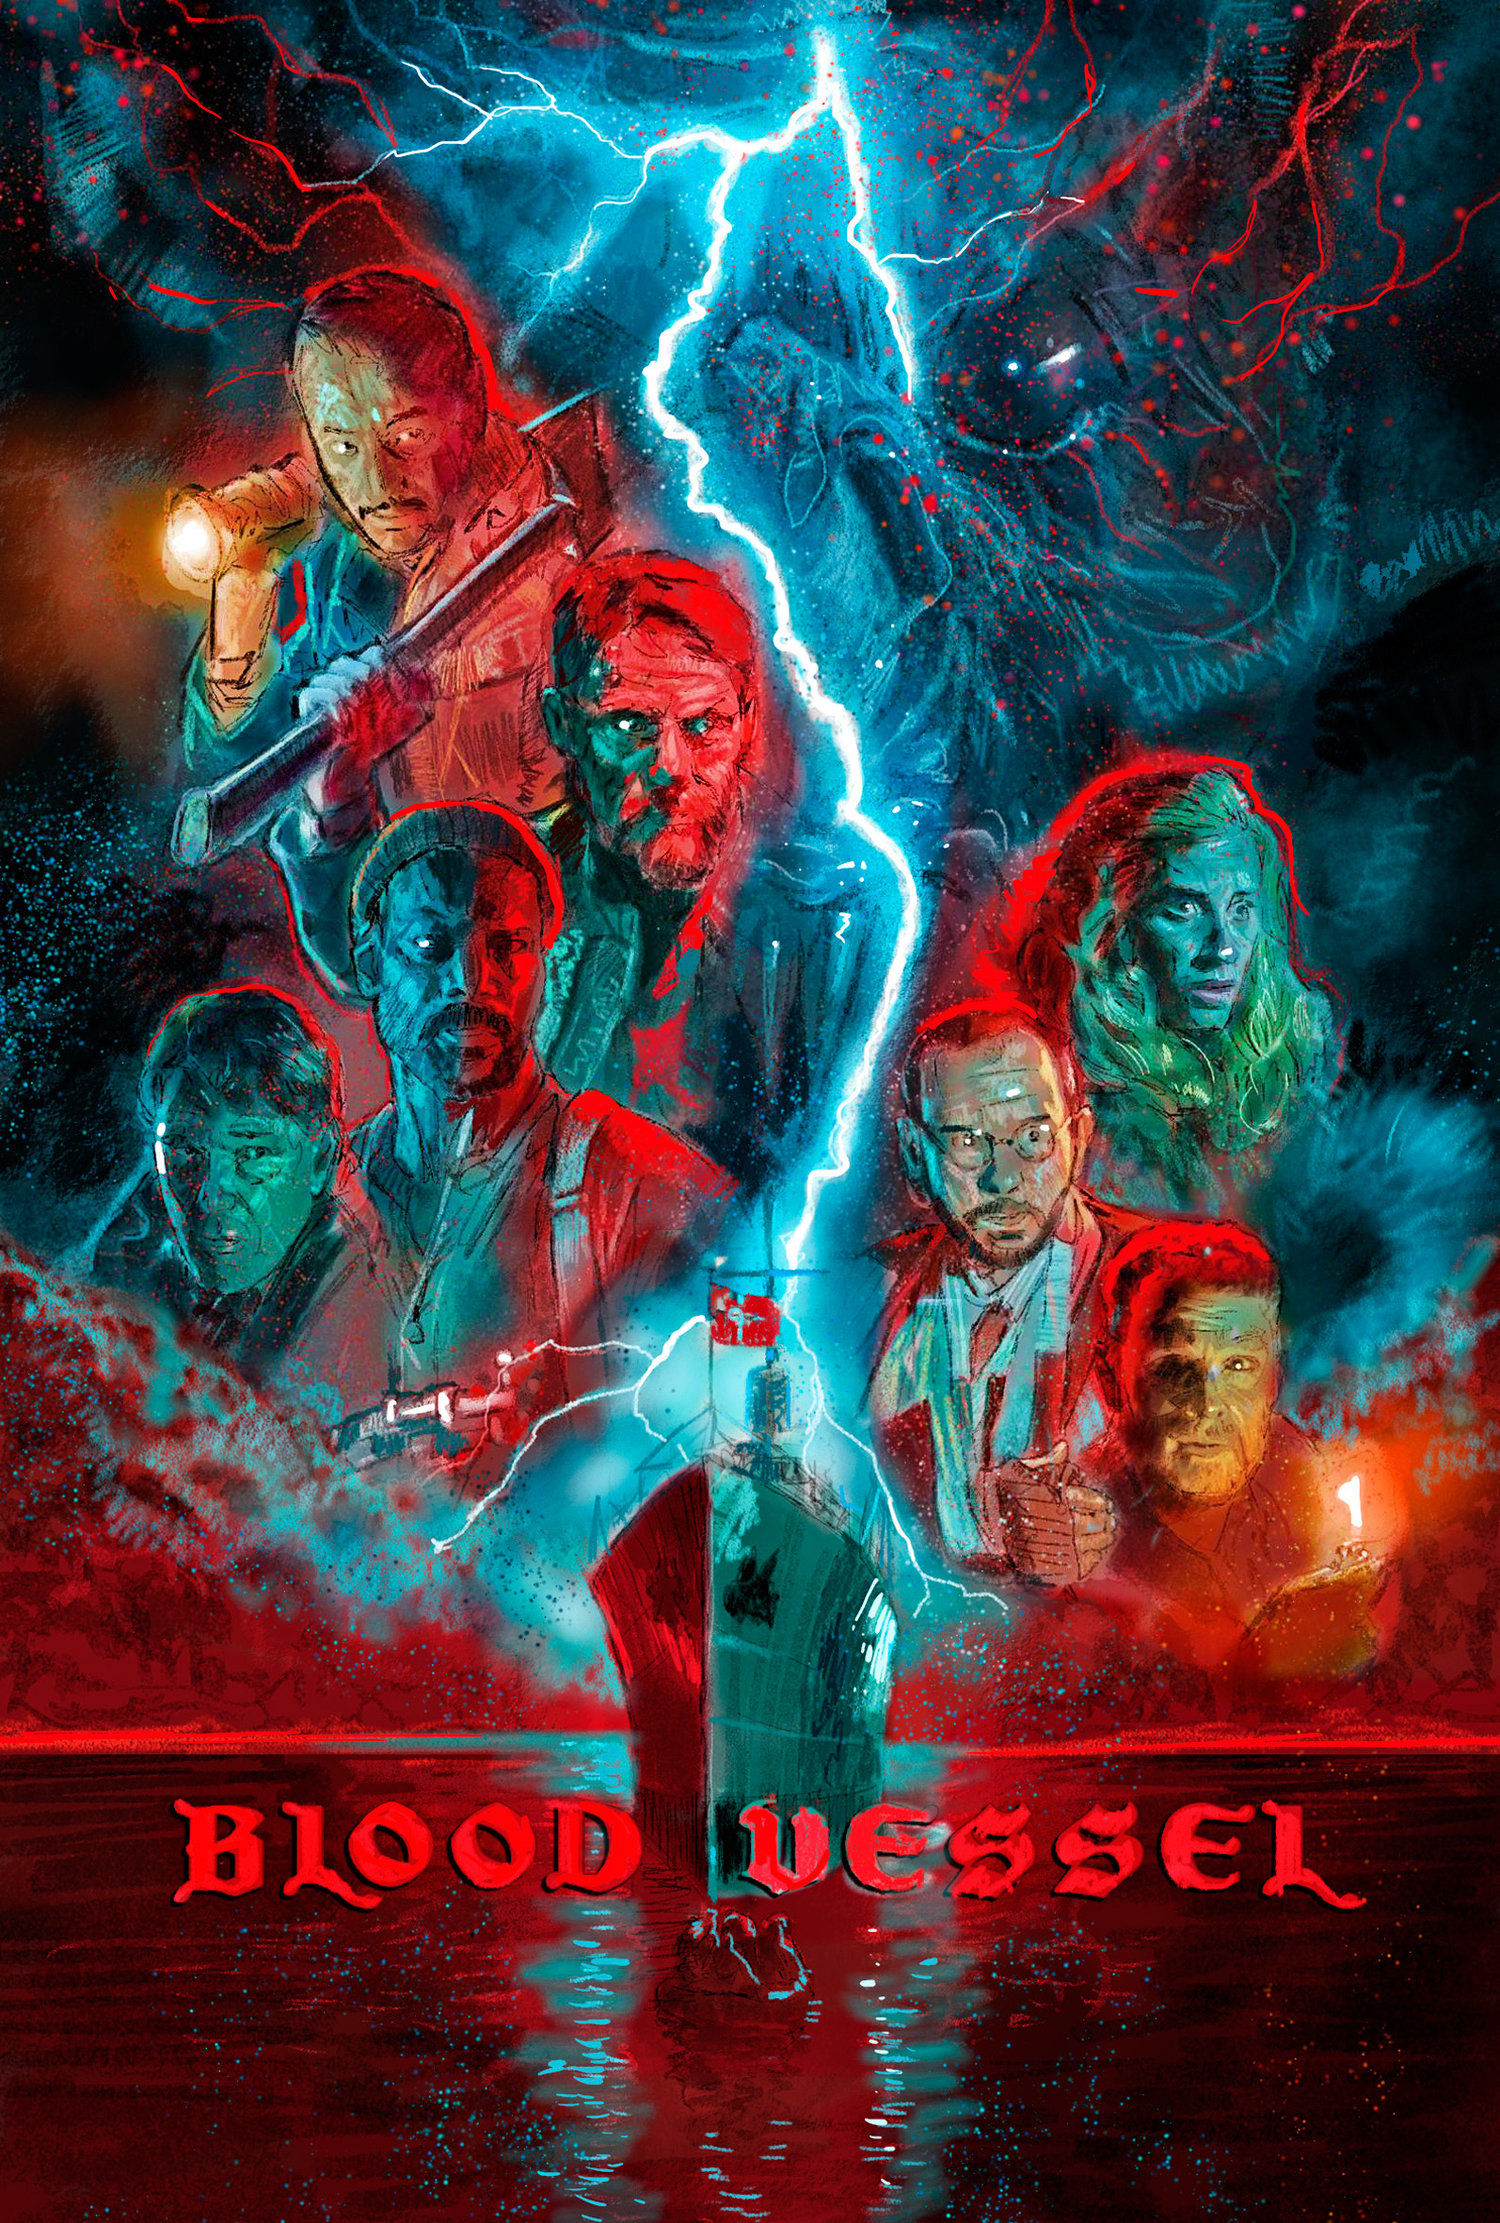 Blood Vessel 2020 English 720p HDRip 300MB ESub 480p